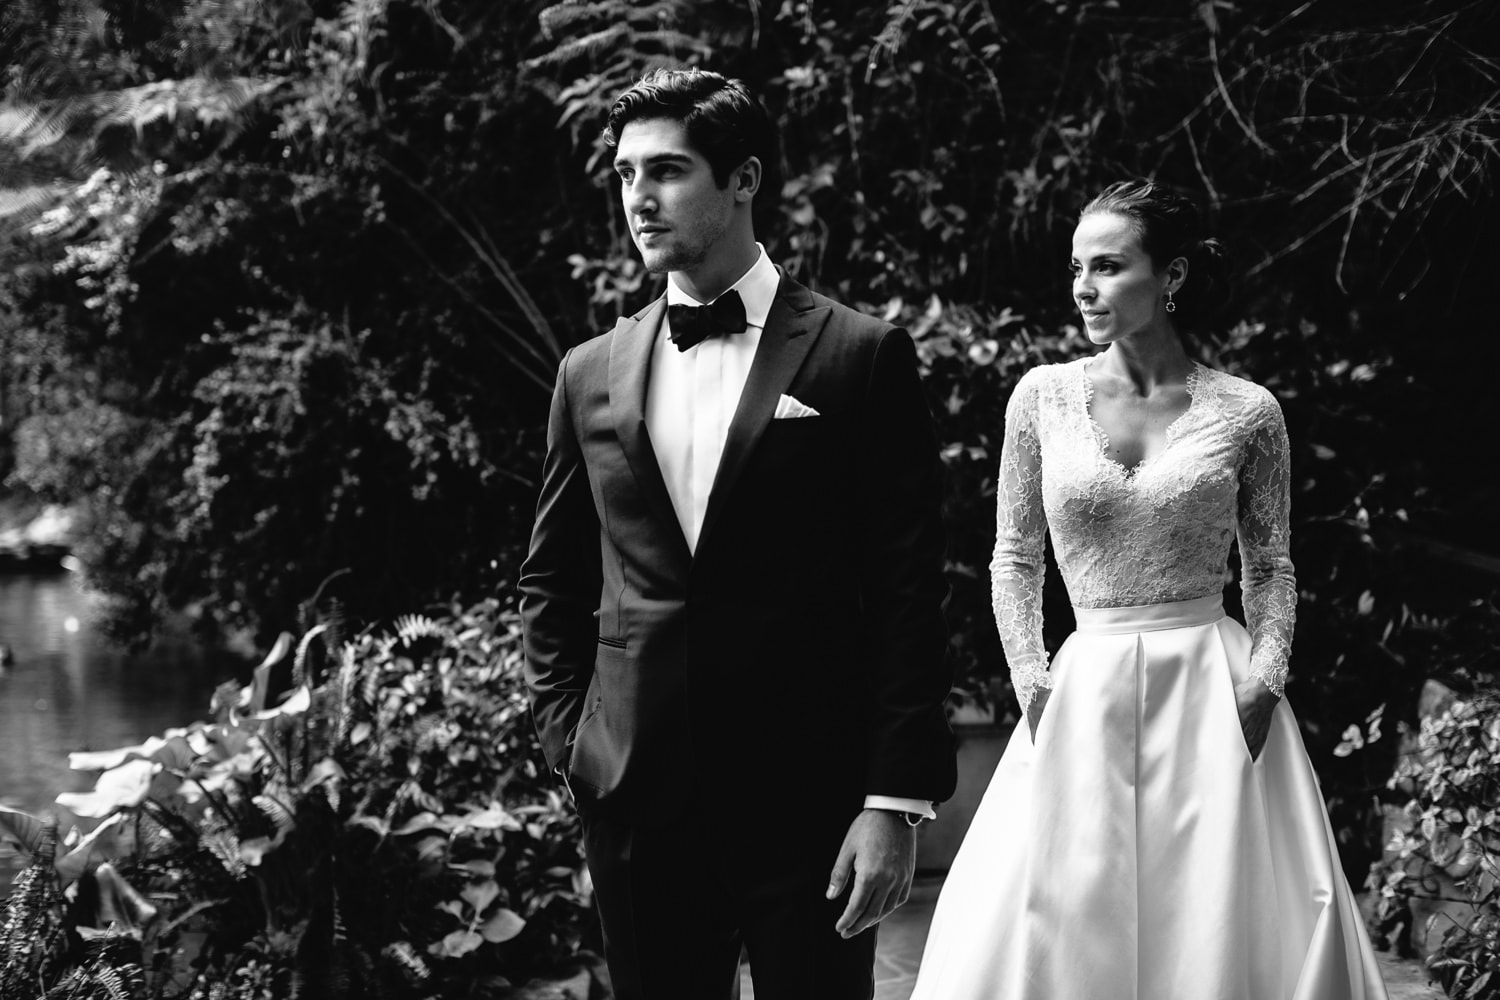 Classic Black and White wedding photo by the Hotel Bel-Air pond